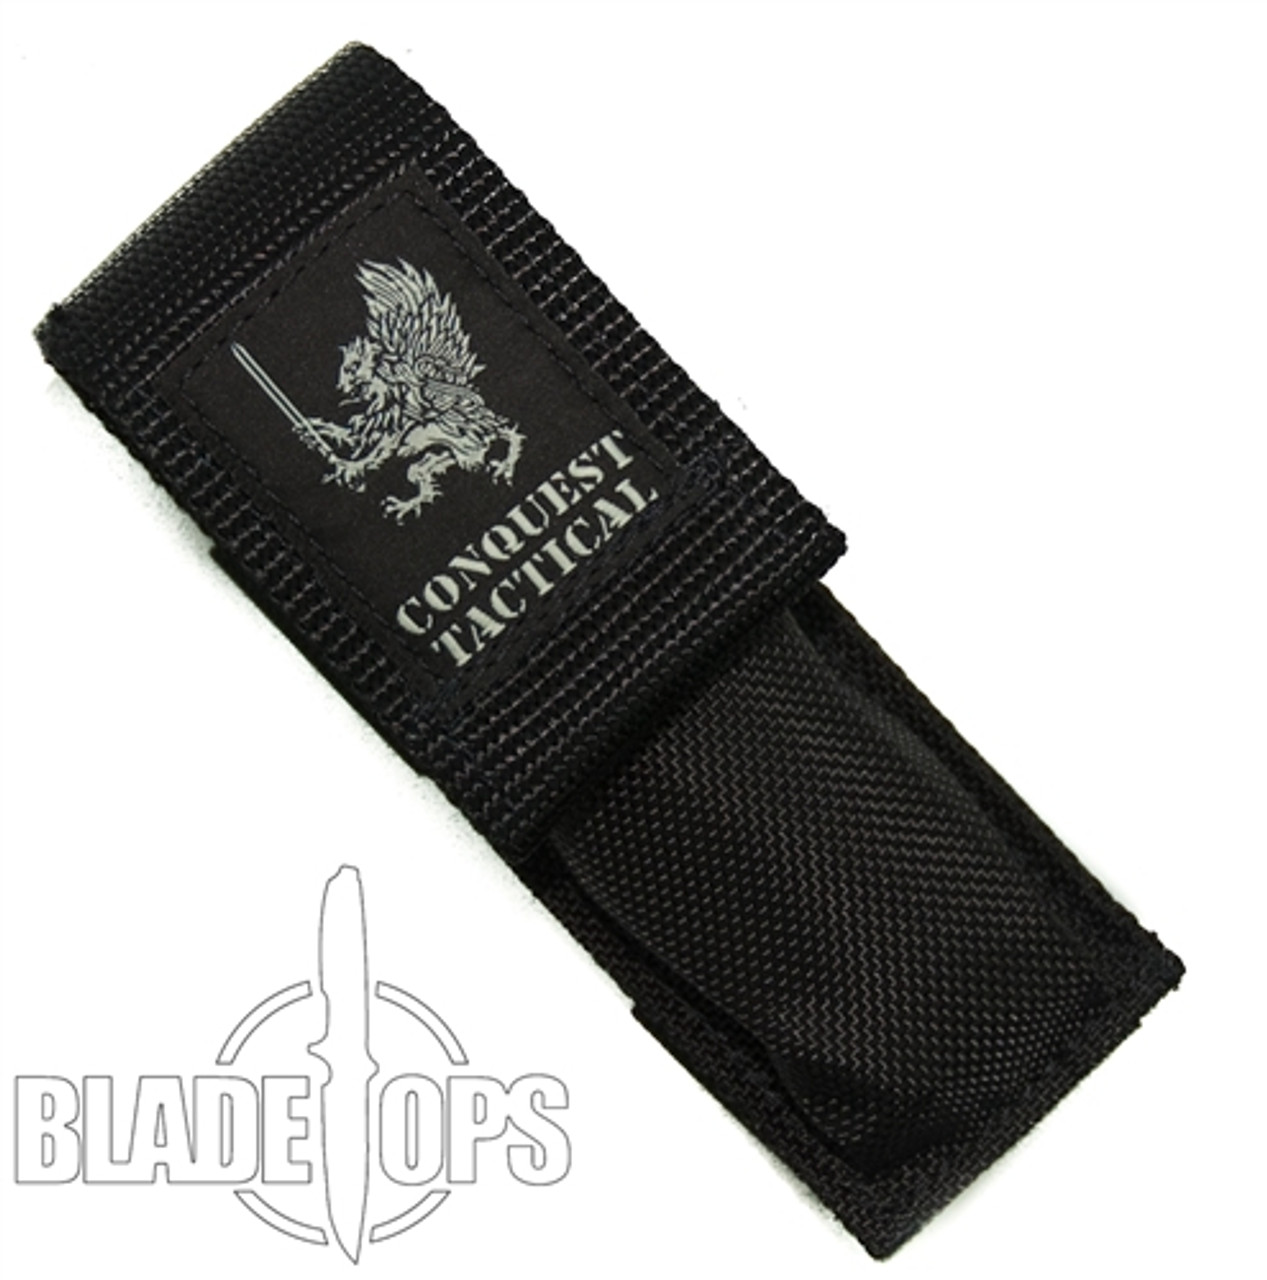 Conquest Tactical Fury OTF Auto Knife, Brightwash Tanto Blade